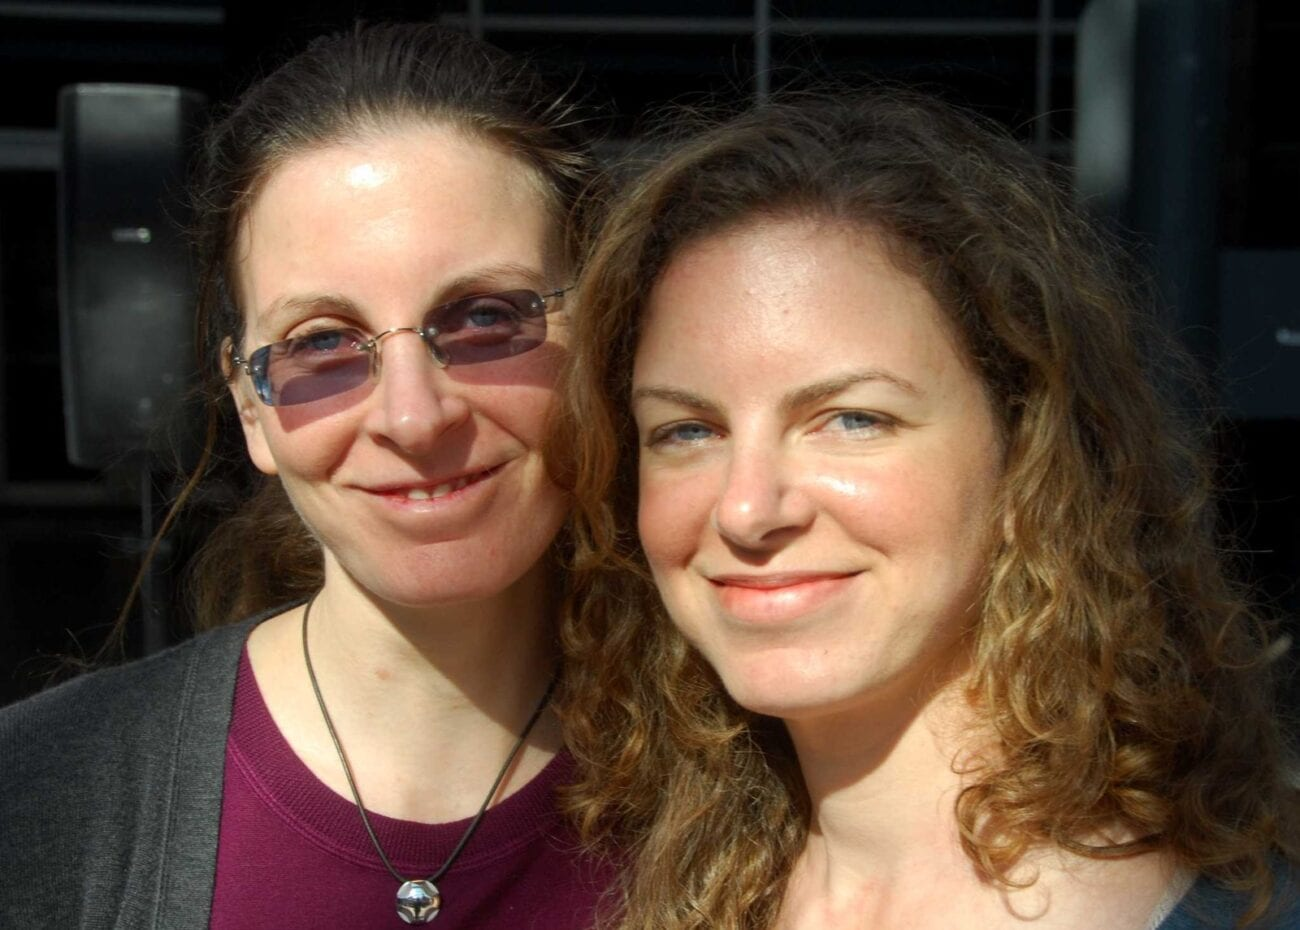 What has happened to the two heiresses Clare and Sara Bronfman whose family fortune helped fuel the NXIVM cult machine? Here's what we know.